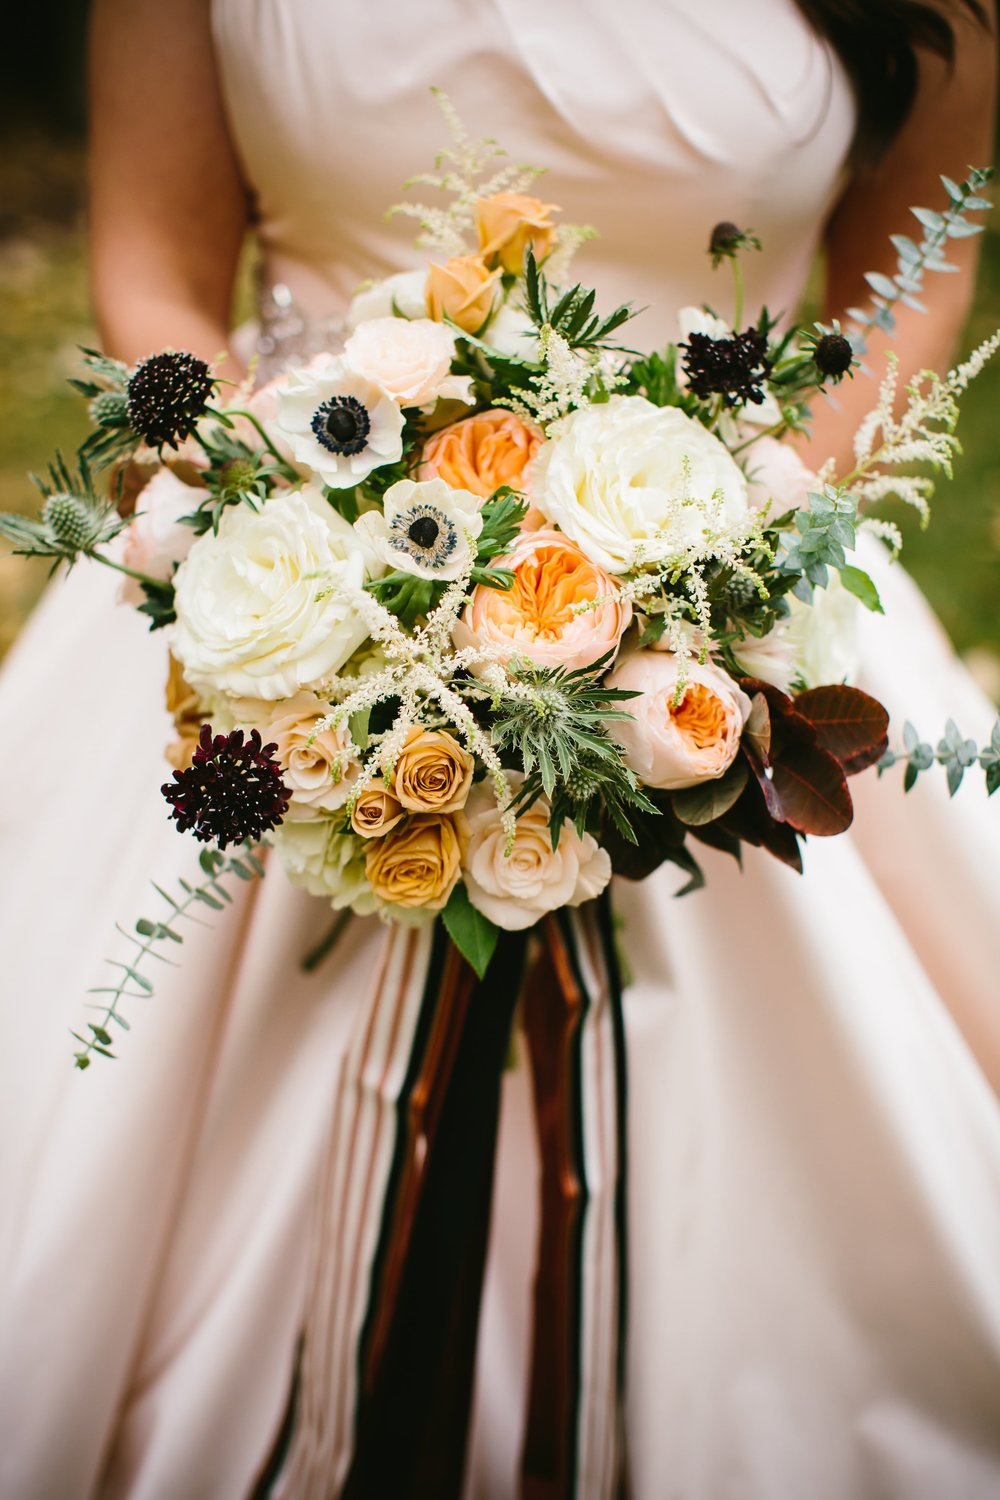 10 Tanya's bouquet by Lily and Co. included ranunculus, anemones, roses, eucalyptus, black dahlias, and hydrangeas, as well as magnolia and Japanese maple leaves